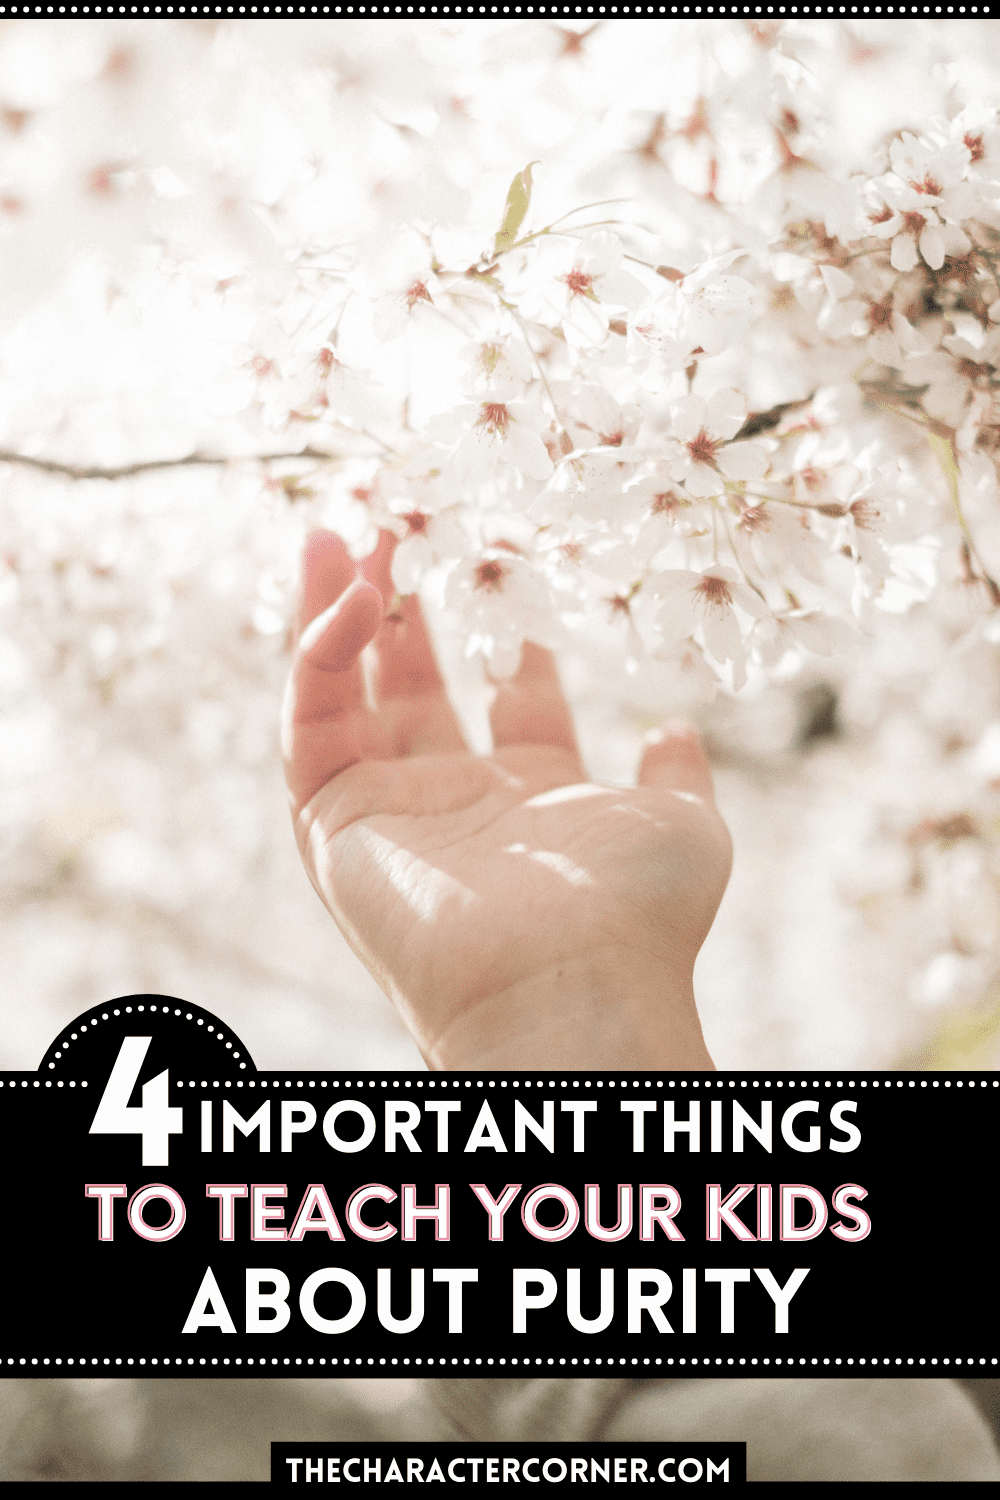 hand open reaching for pink flower. Text on image reads 4 important things to teach your kids about purity.